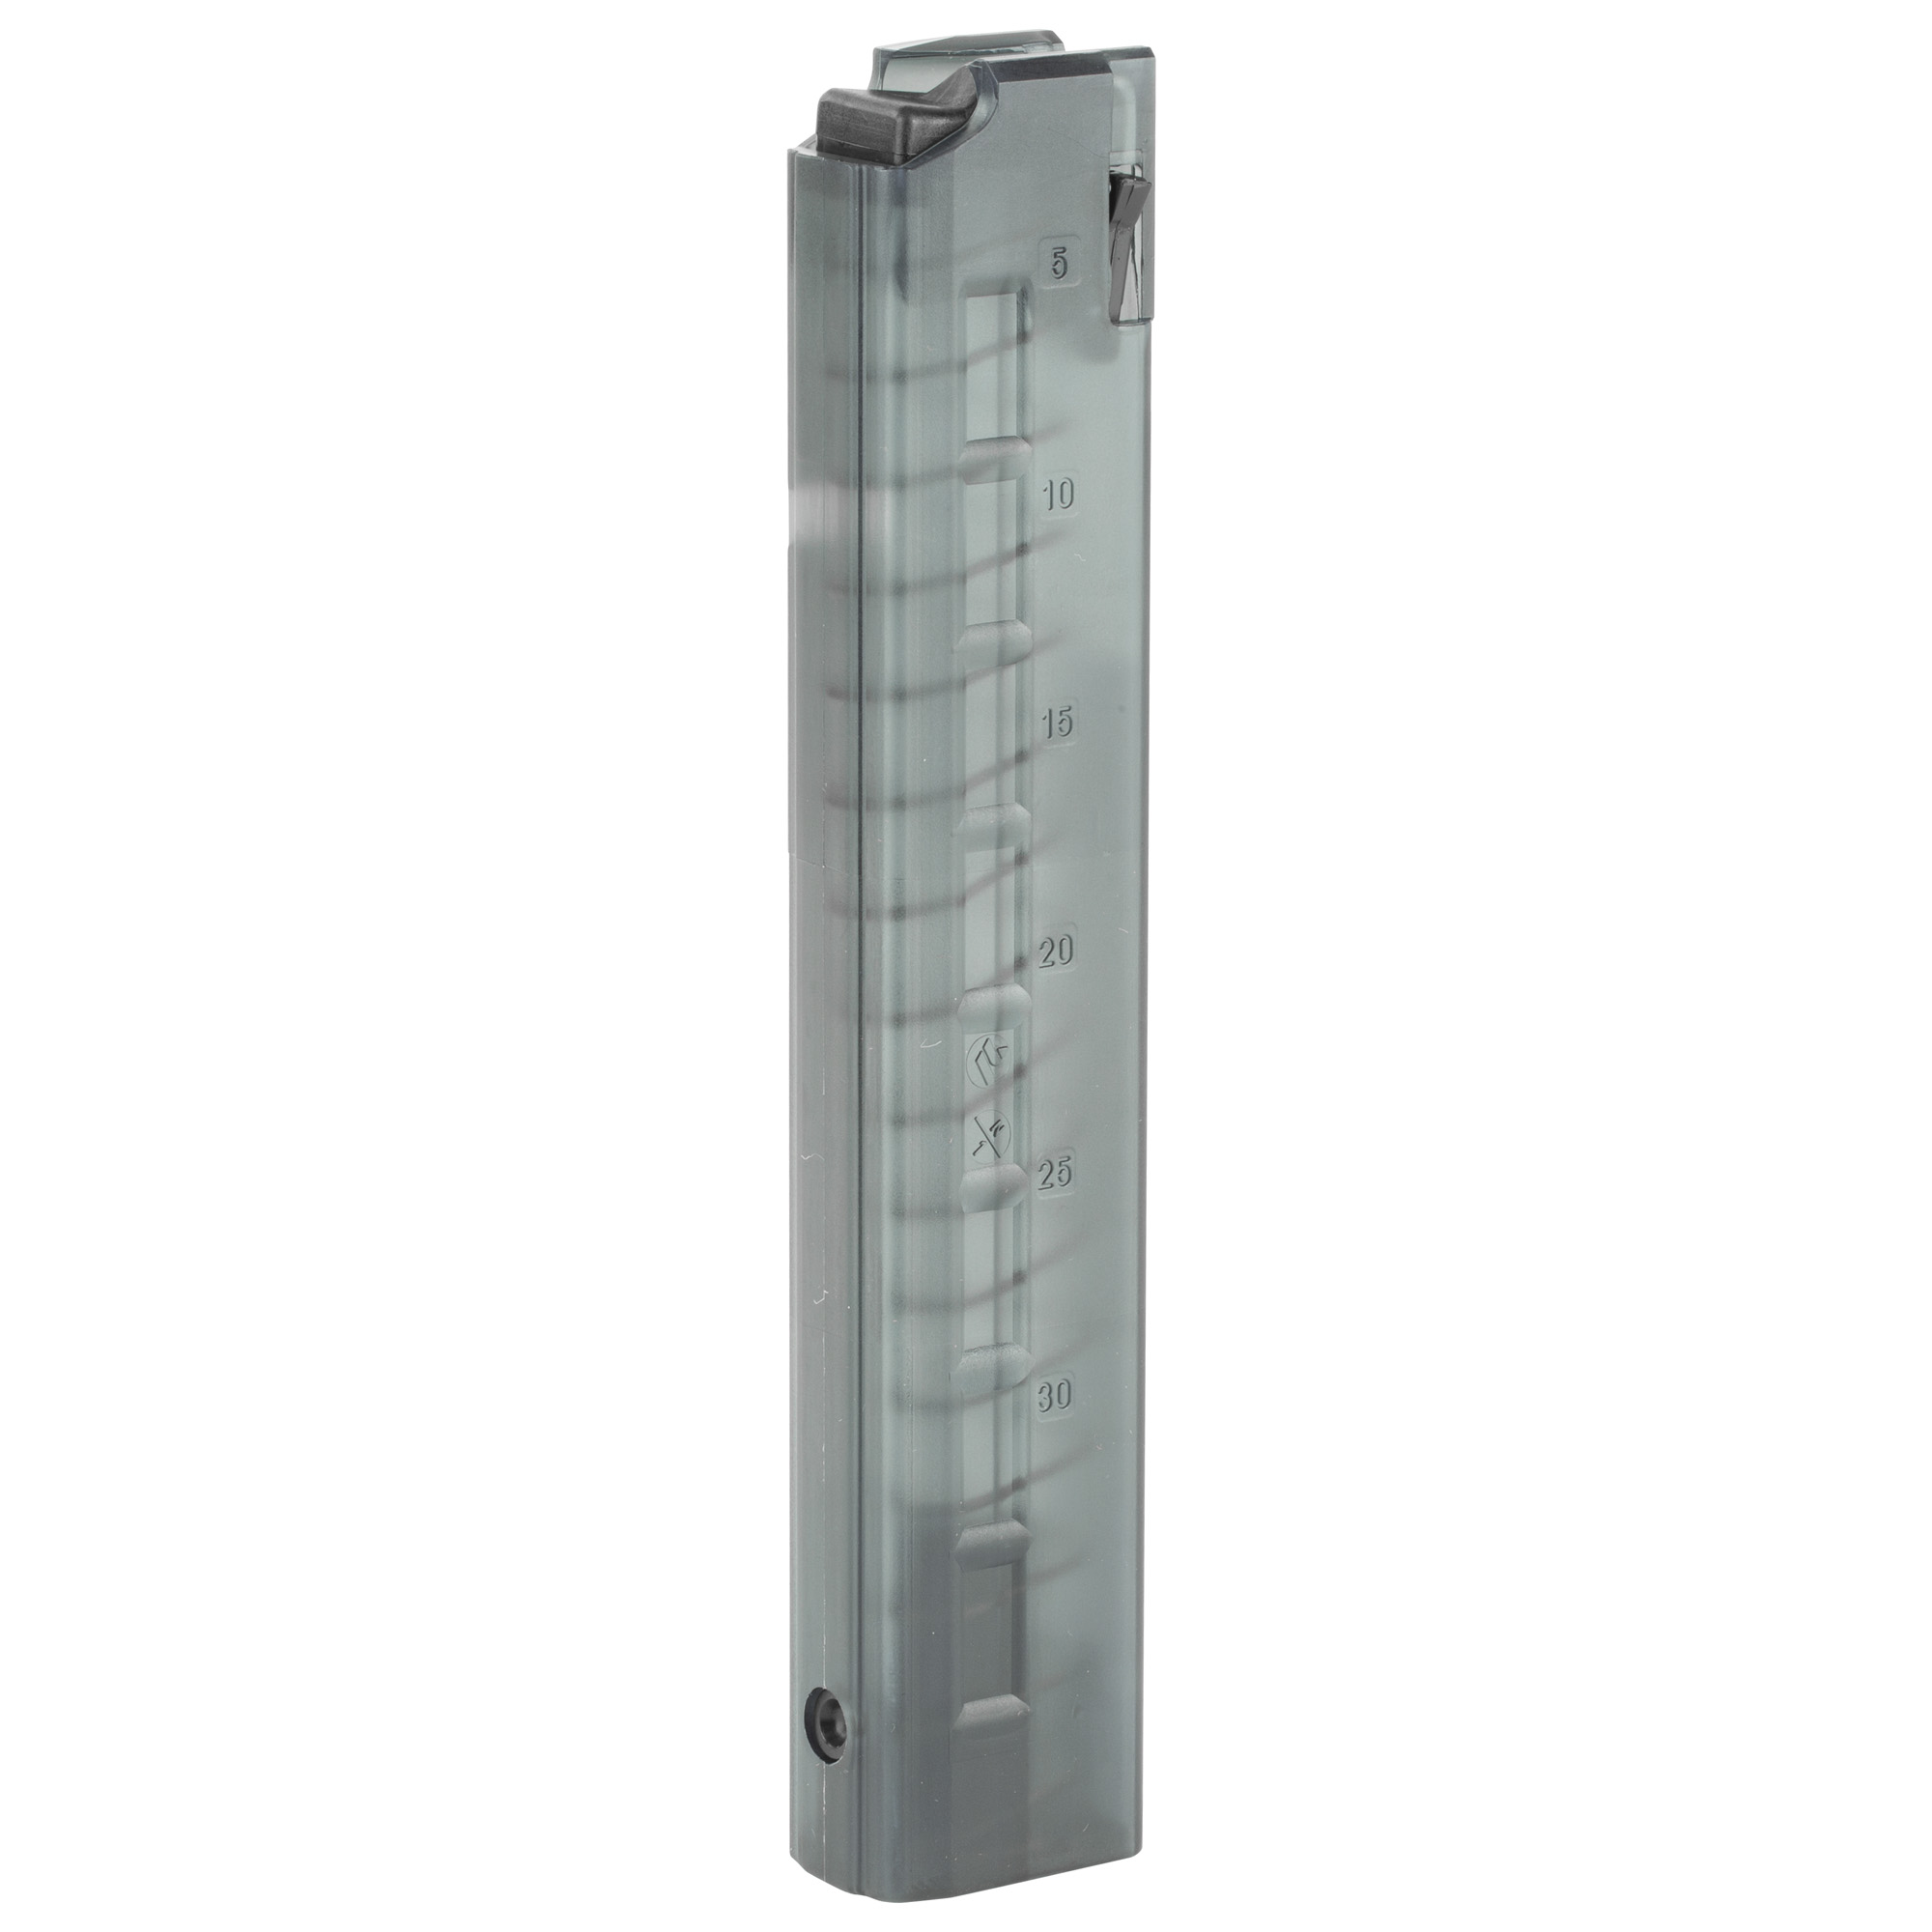 B&T's TP9 / APC9 / P26 / KH9 / GHM9 9mm replacement magazines are the same straight-body stick mags that ship with new firearms. These magazines have a translucent polymer body that lets you see how many rounds are left in the magazine.